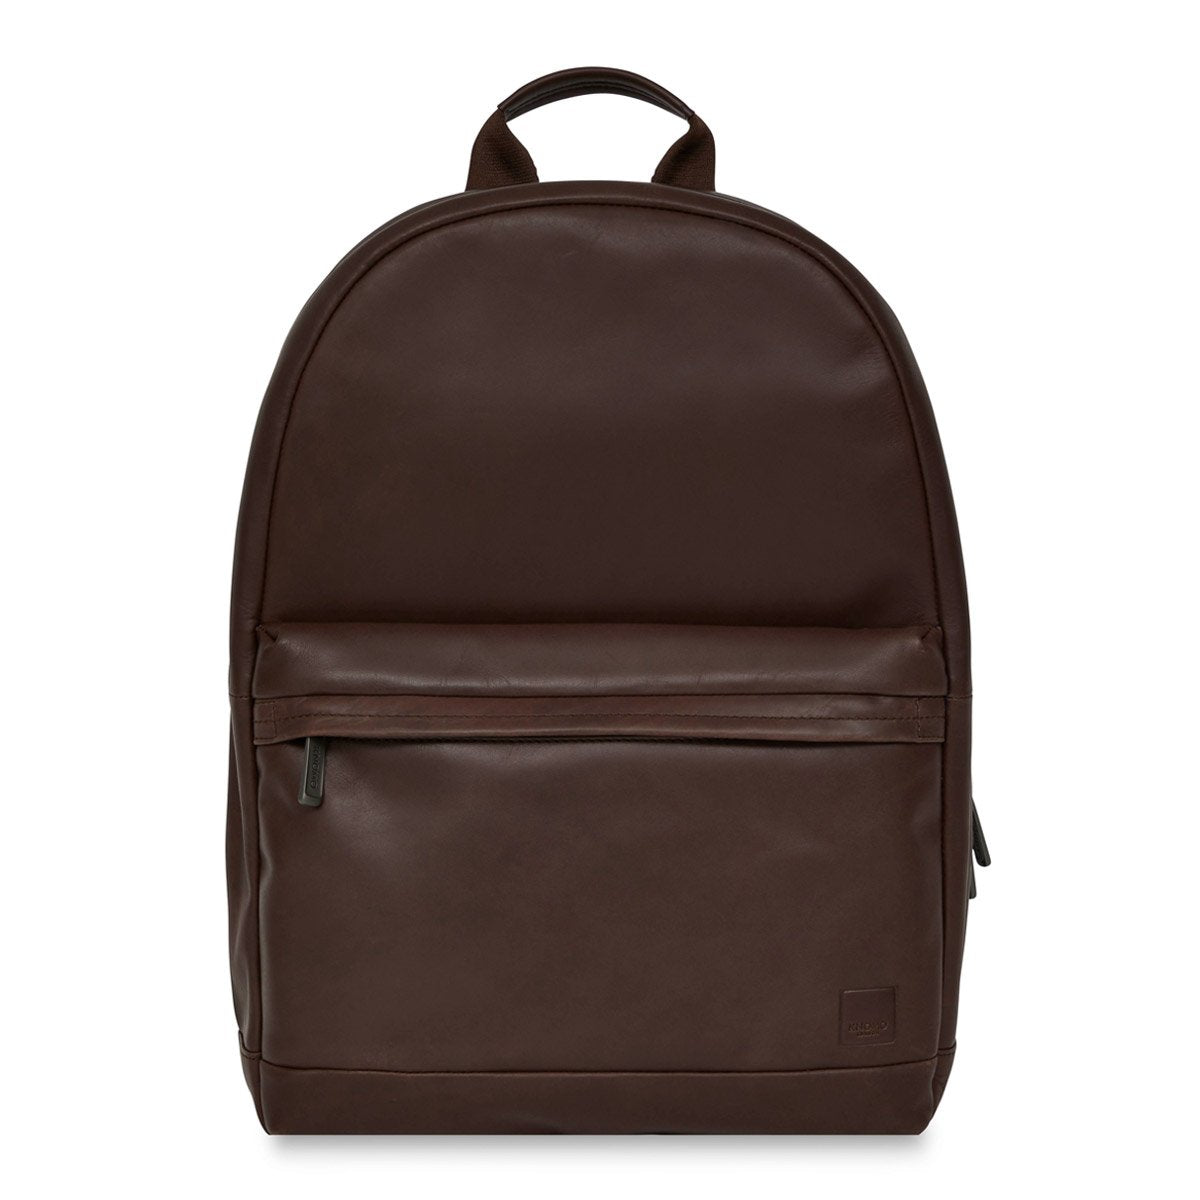 "Albion Leather Laptop Backpack - 15"" -  Brown 